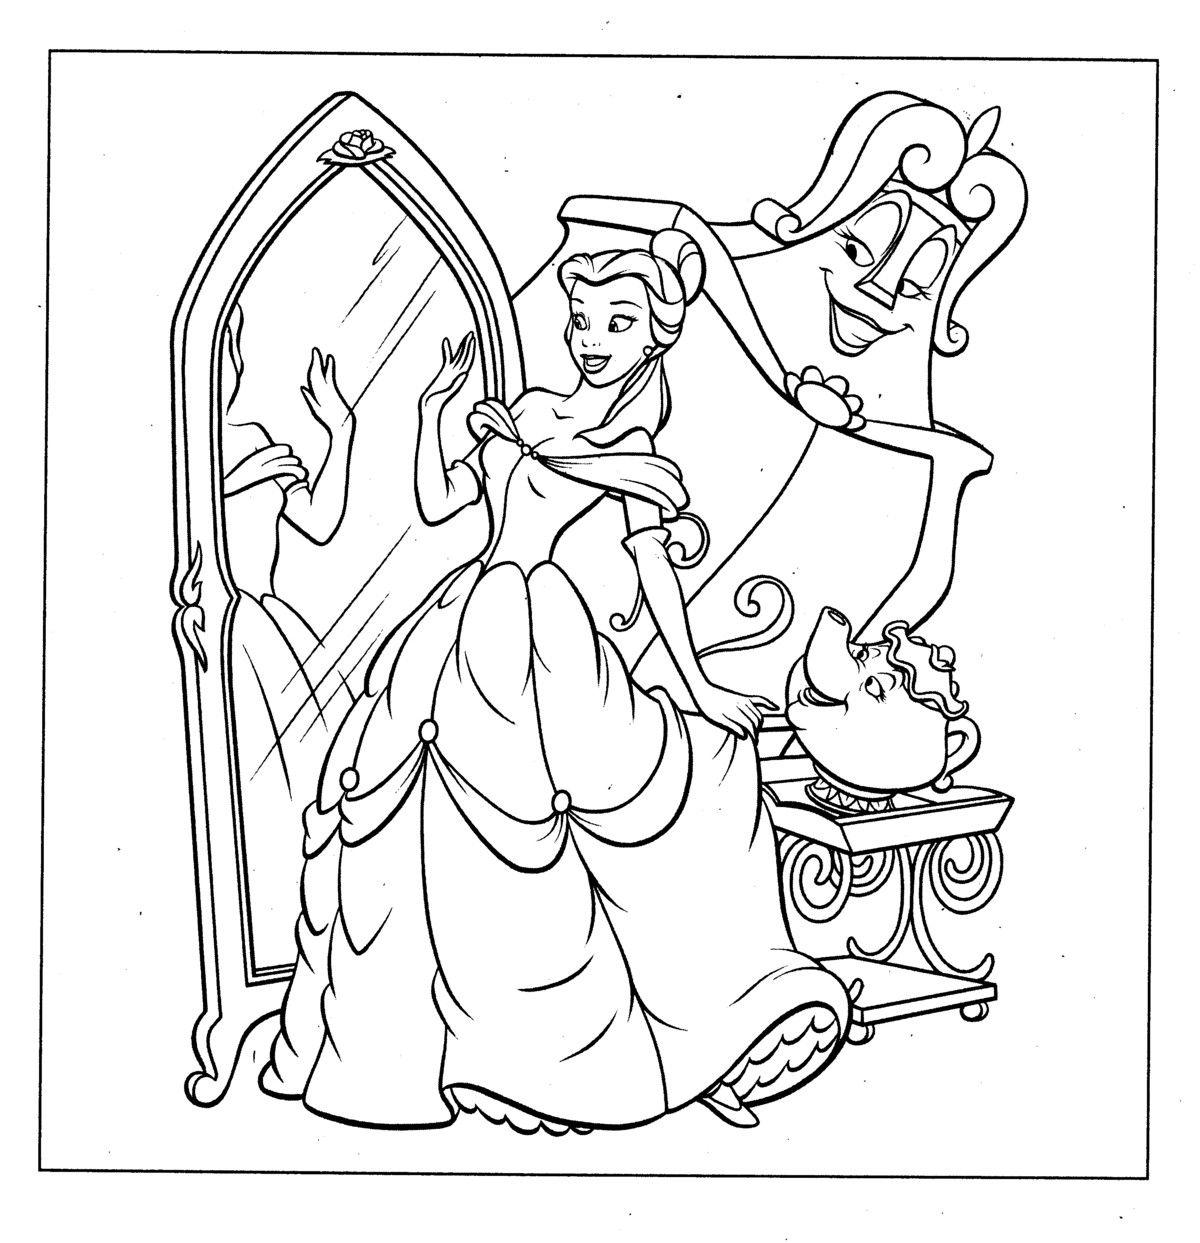 Disney Princess Coloring Pages To Printable | Coloring pages ...